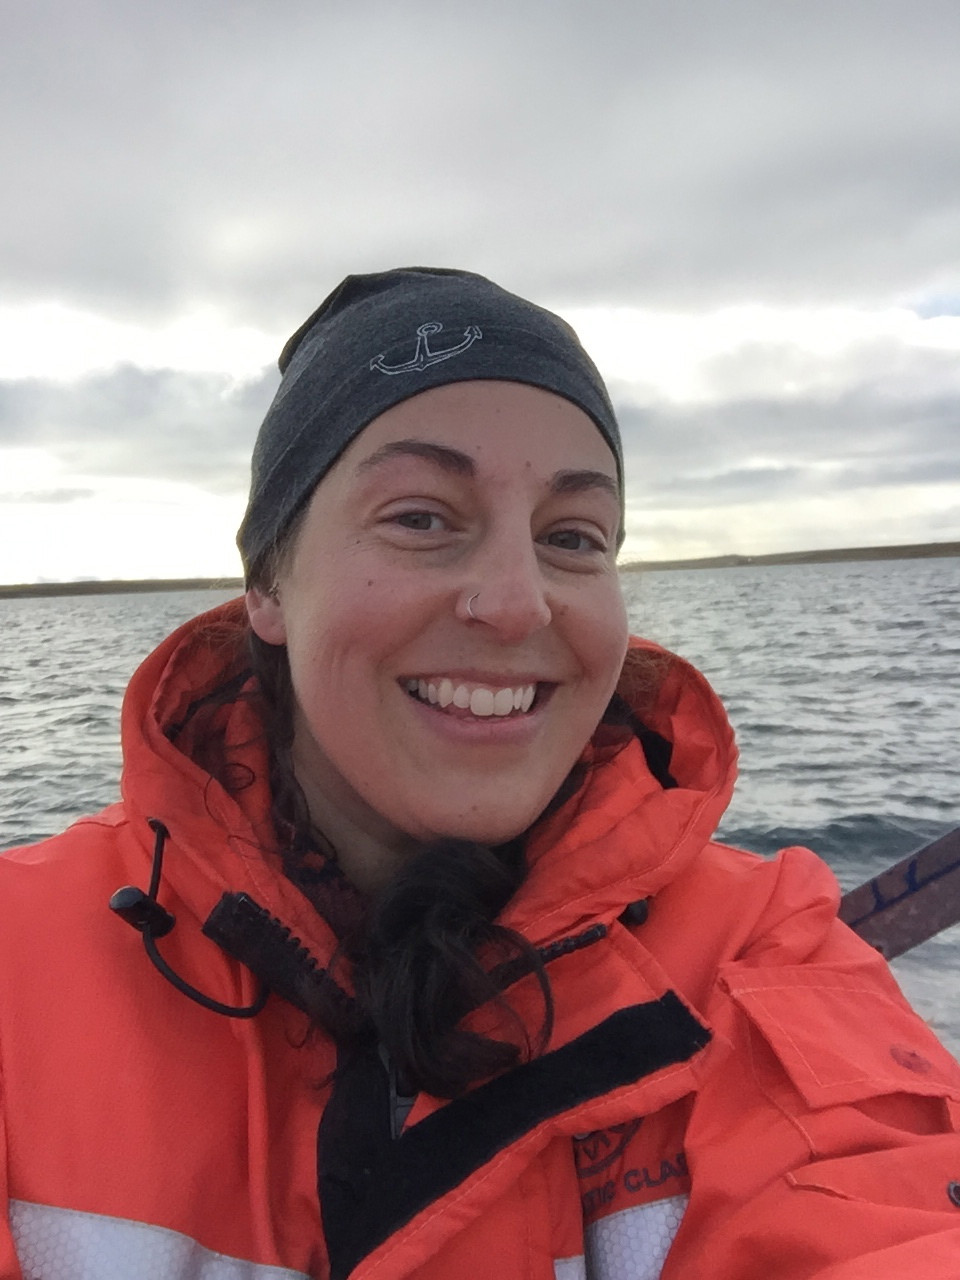 A woman wearing a grey toque and Arctic boat jacket smiles at the camera. She is on a boat with water in the background.